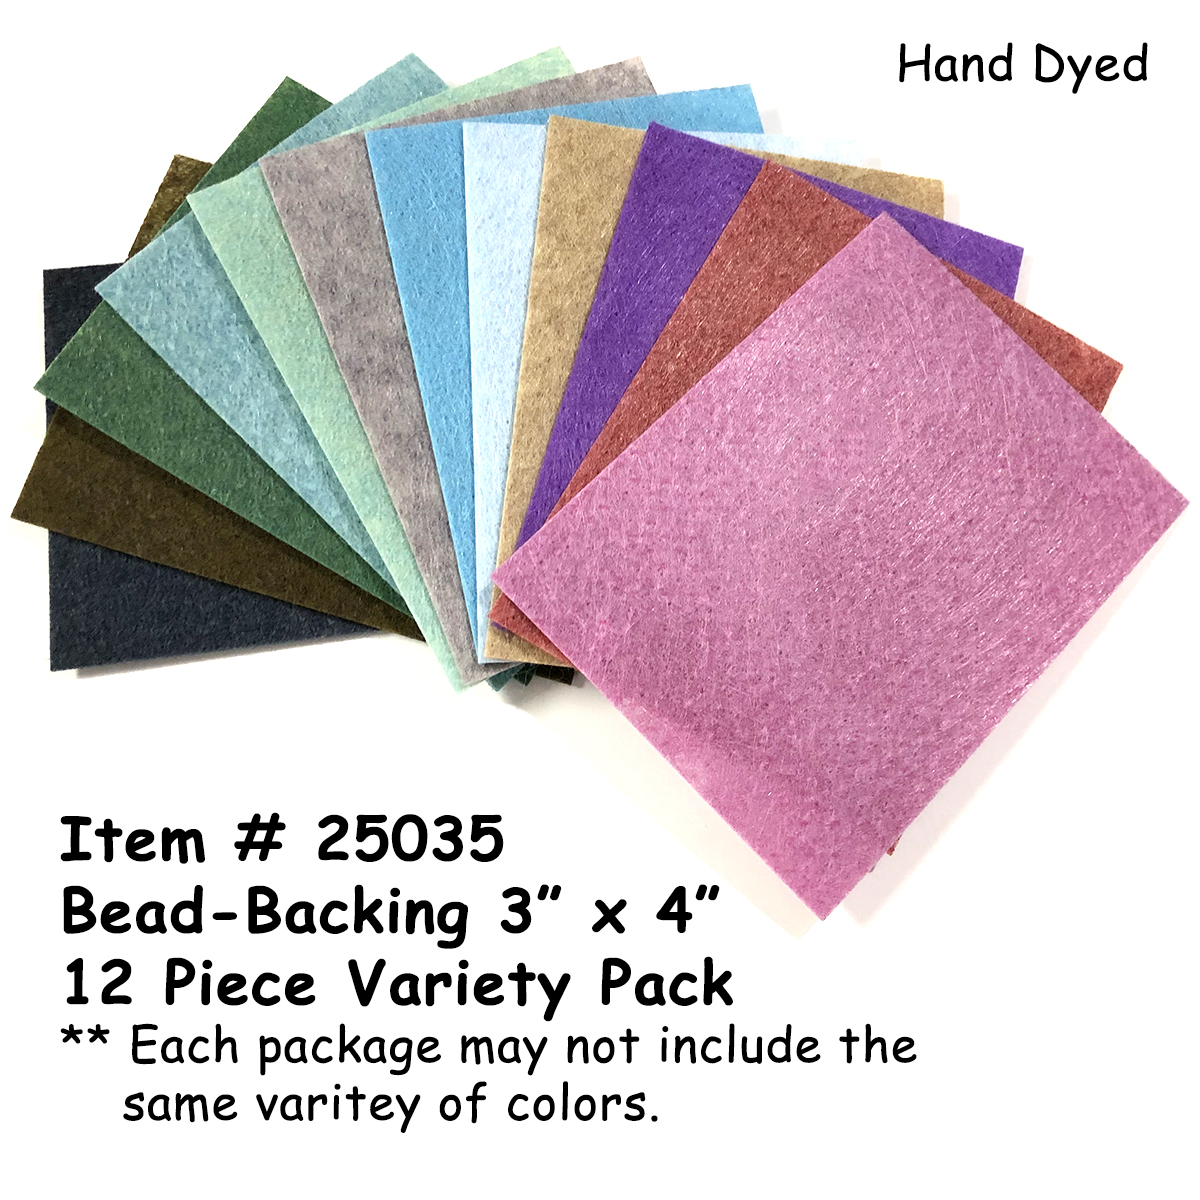 "Bead Backing Economy Foundation 3"" x 4"" Variety Pack 12 Pieces"